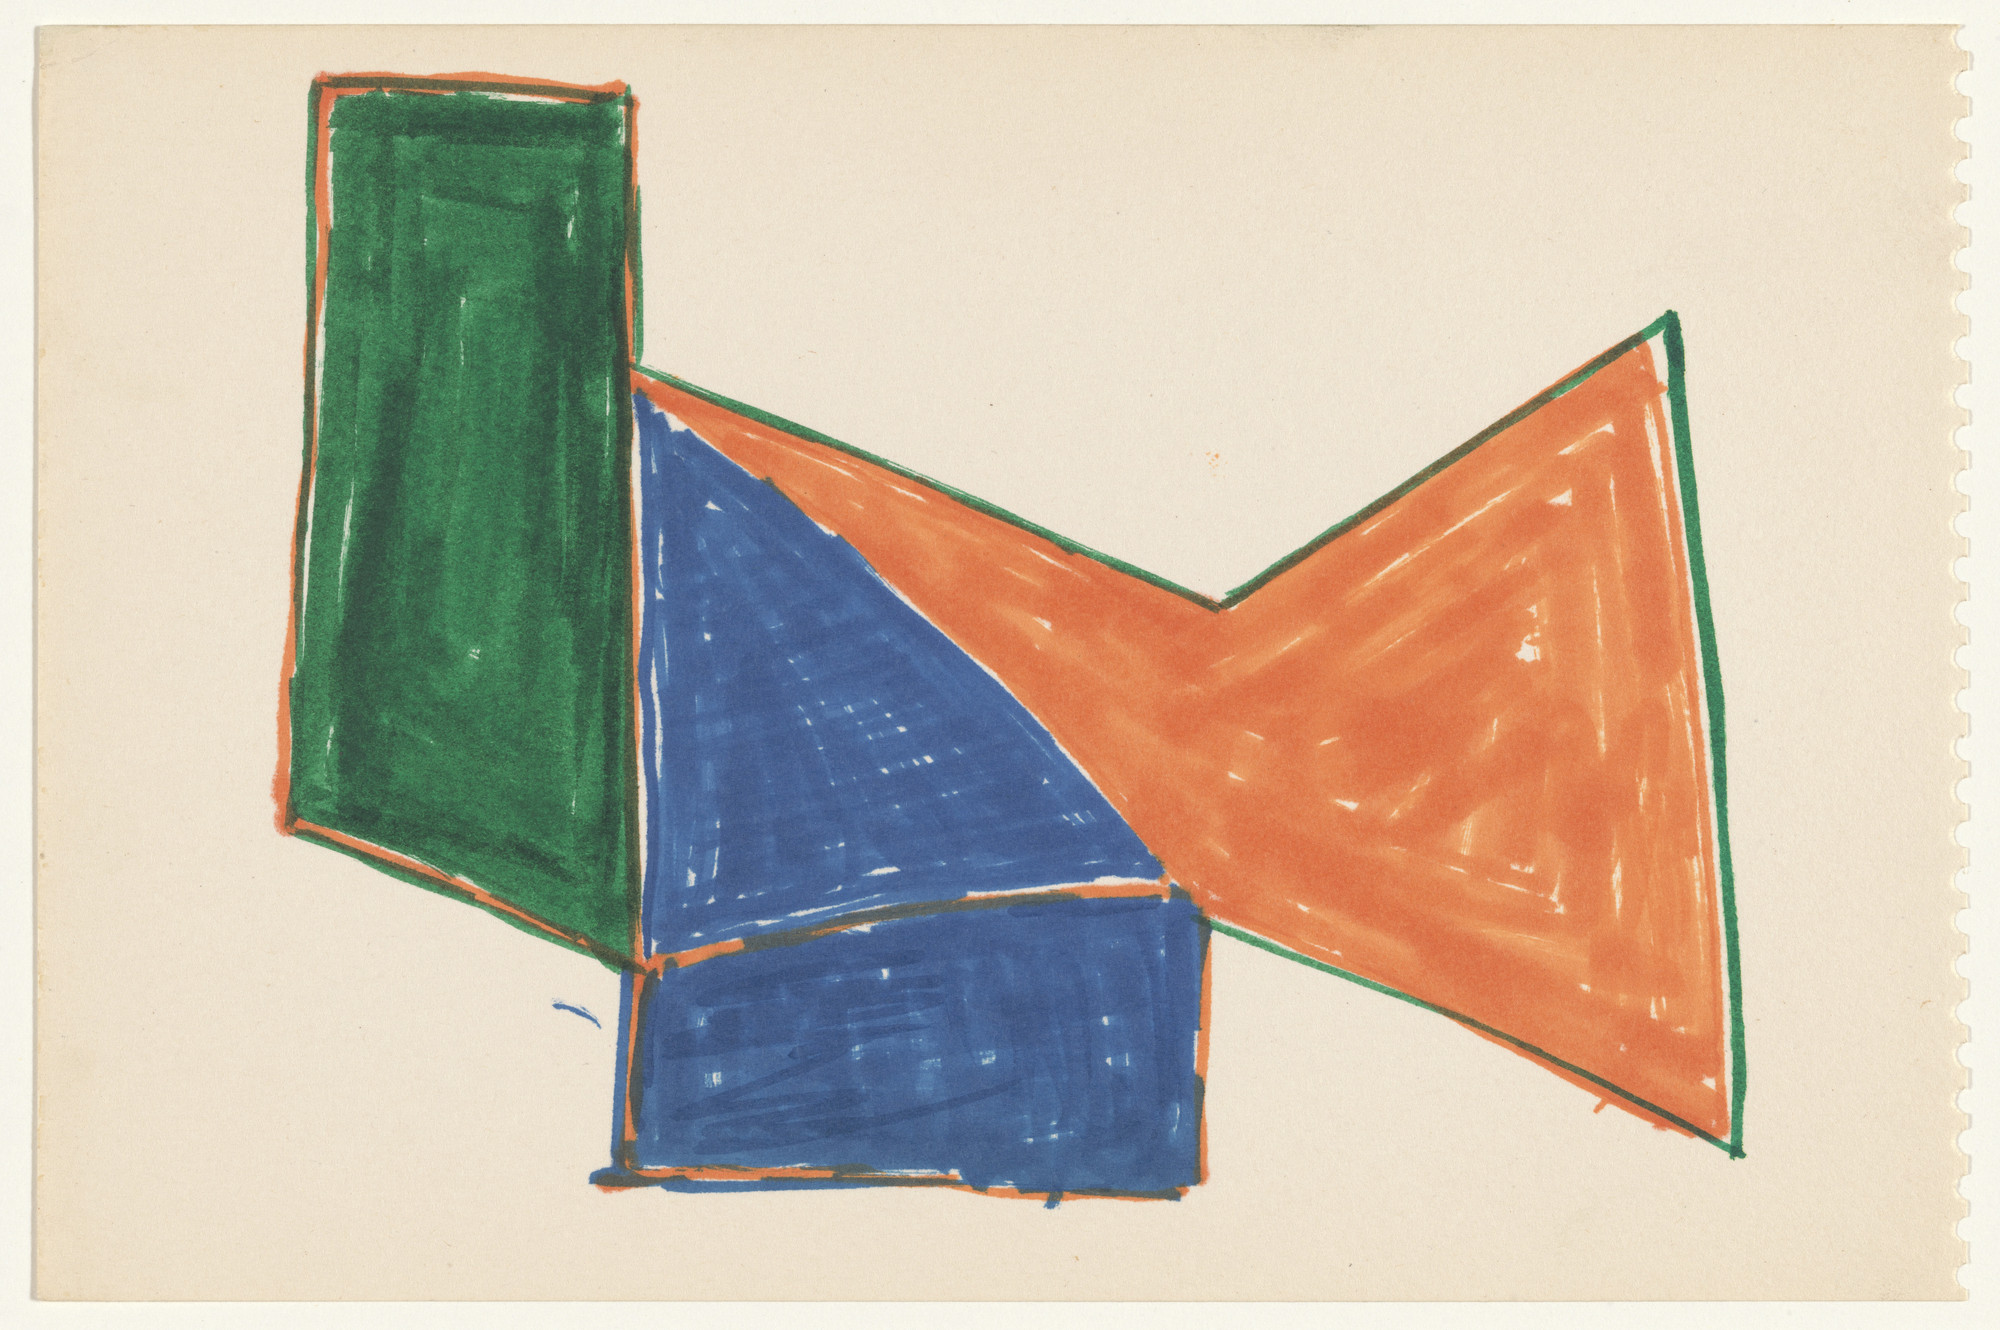 Frank Stella. Untitled. (1963)